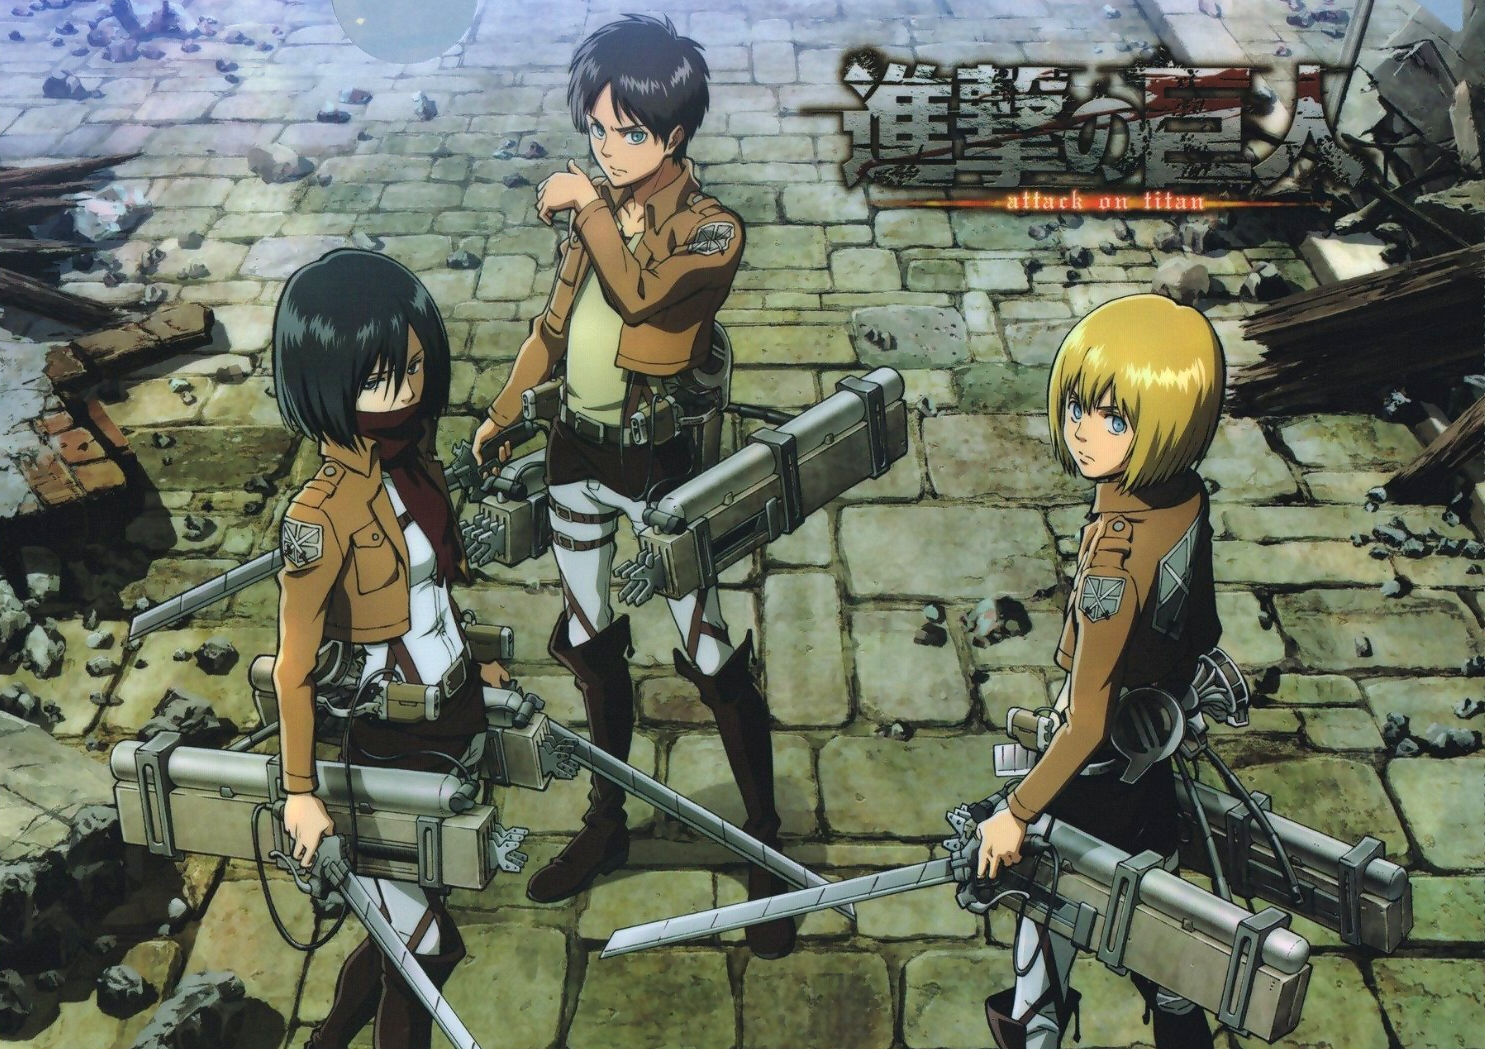 Attack On Titan Shingeko No Kyojin Mikasa Eren Armin